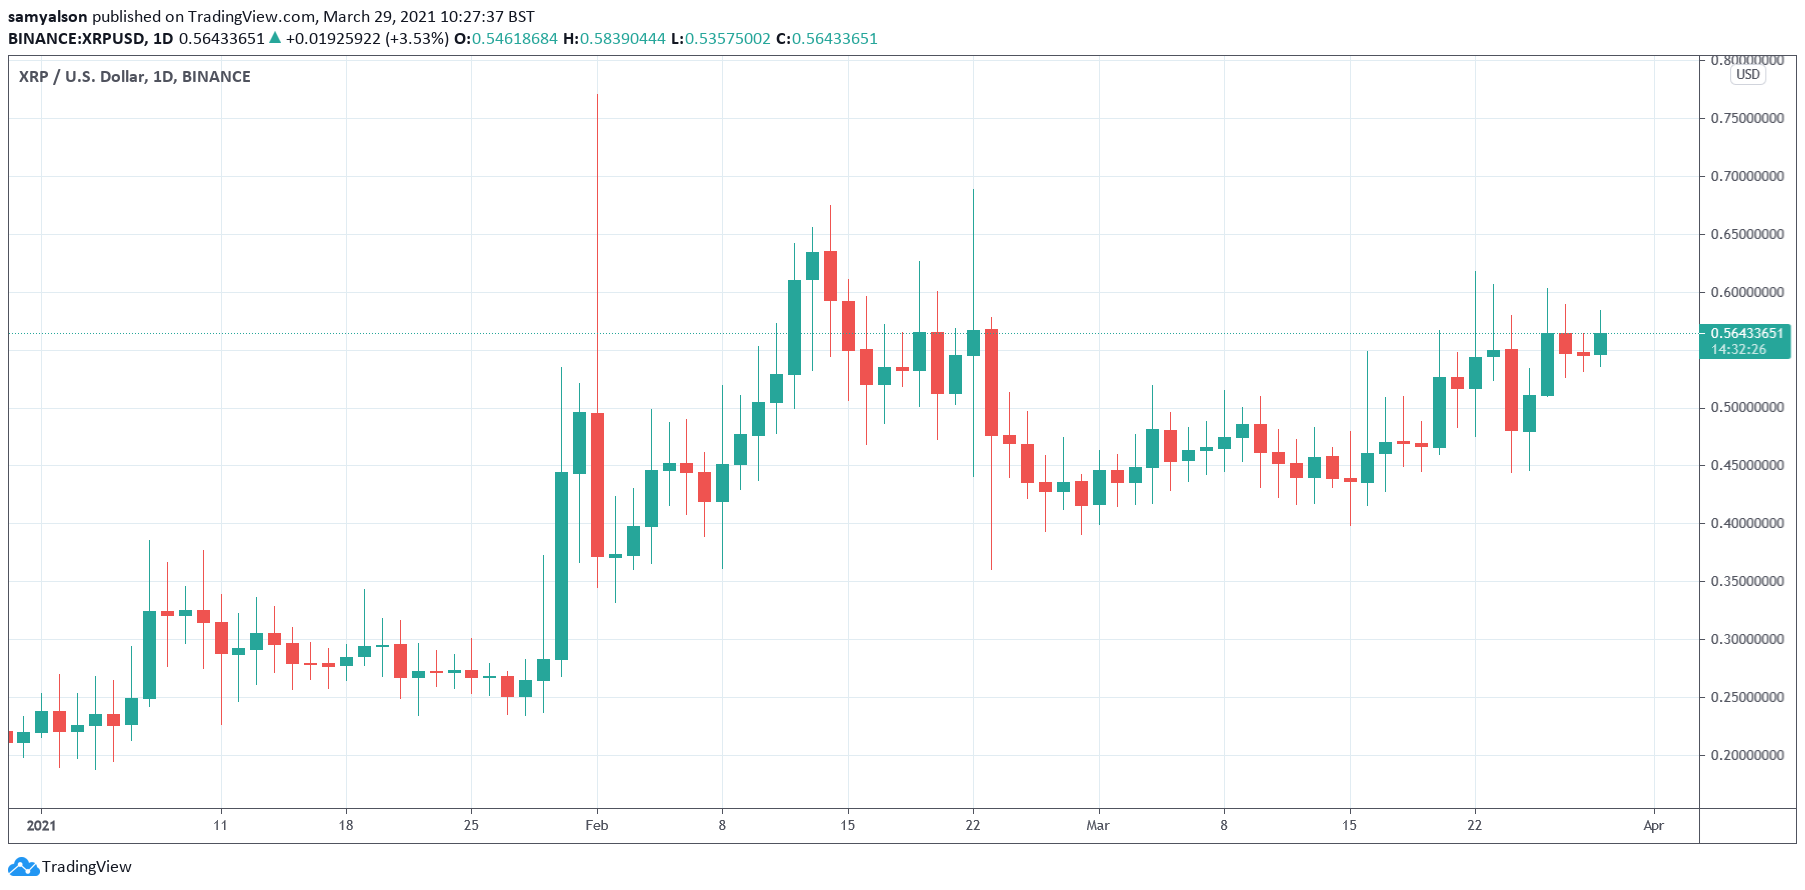 XRP daily chart